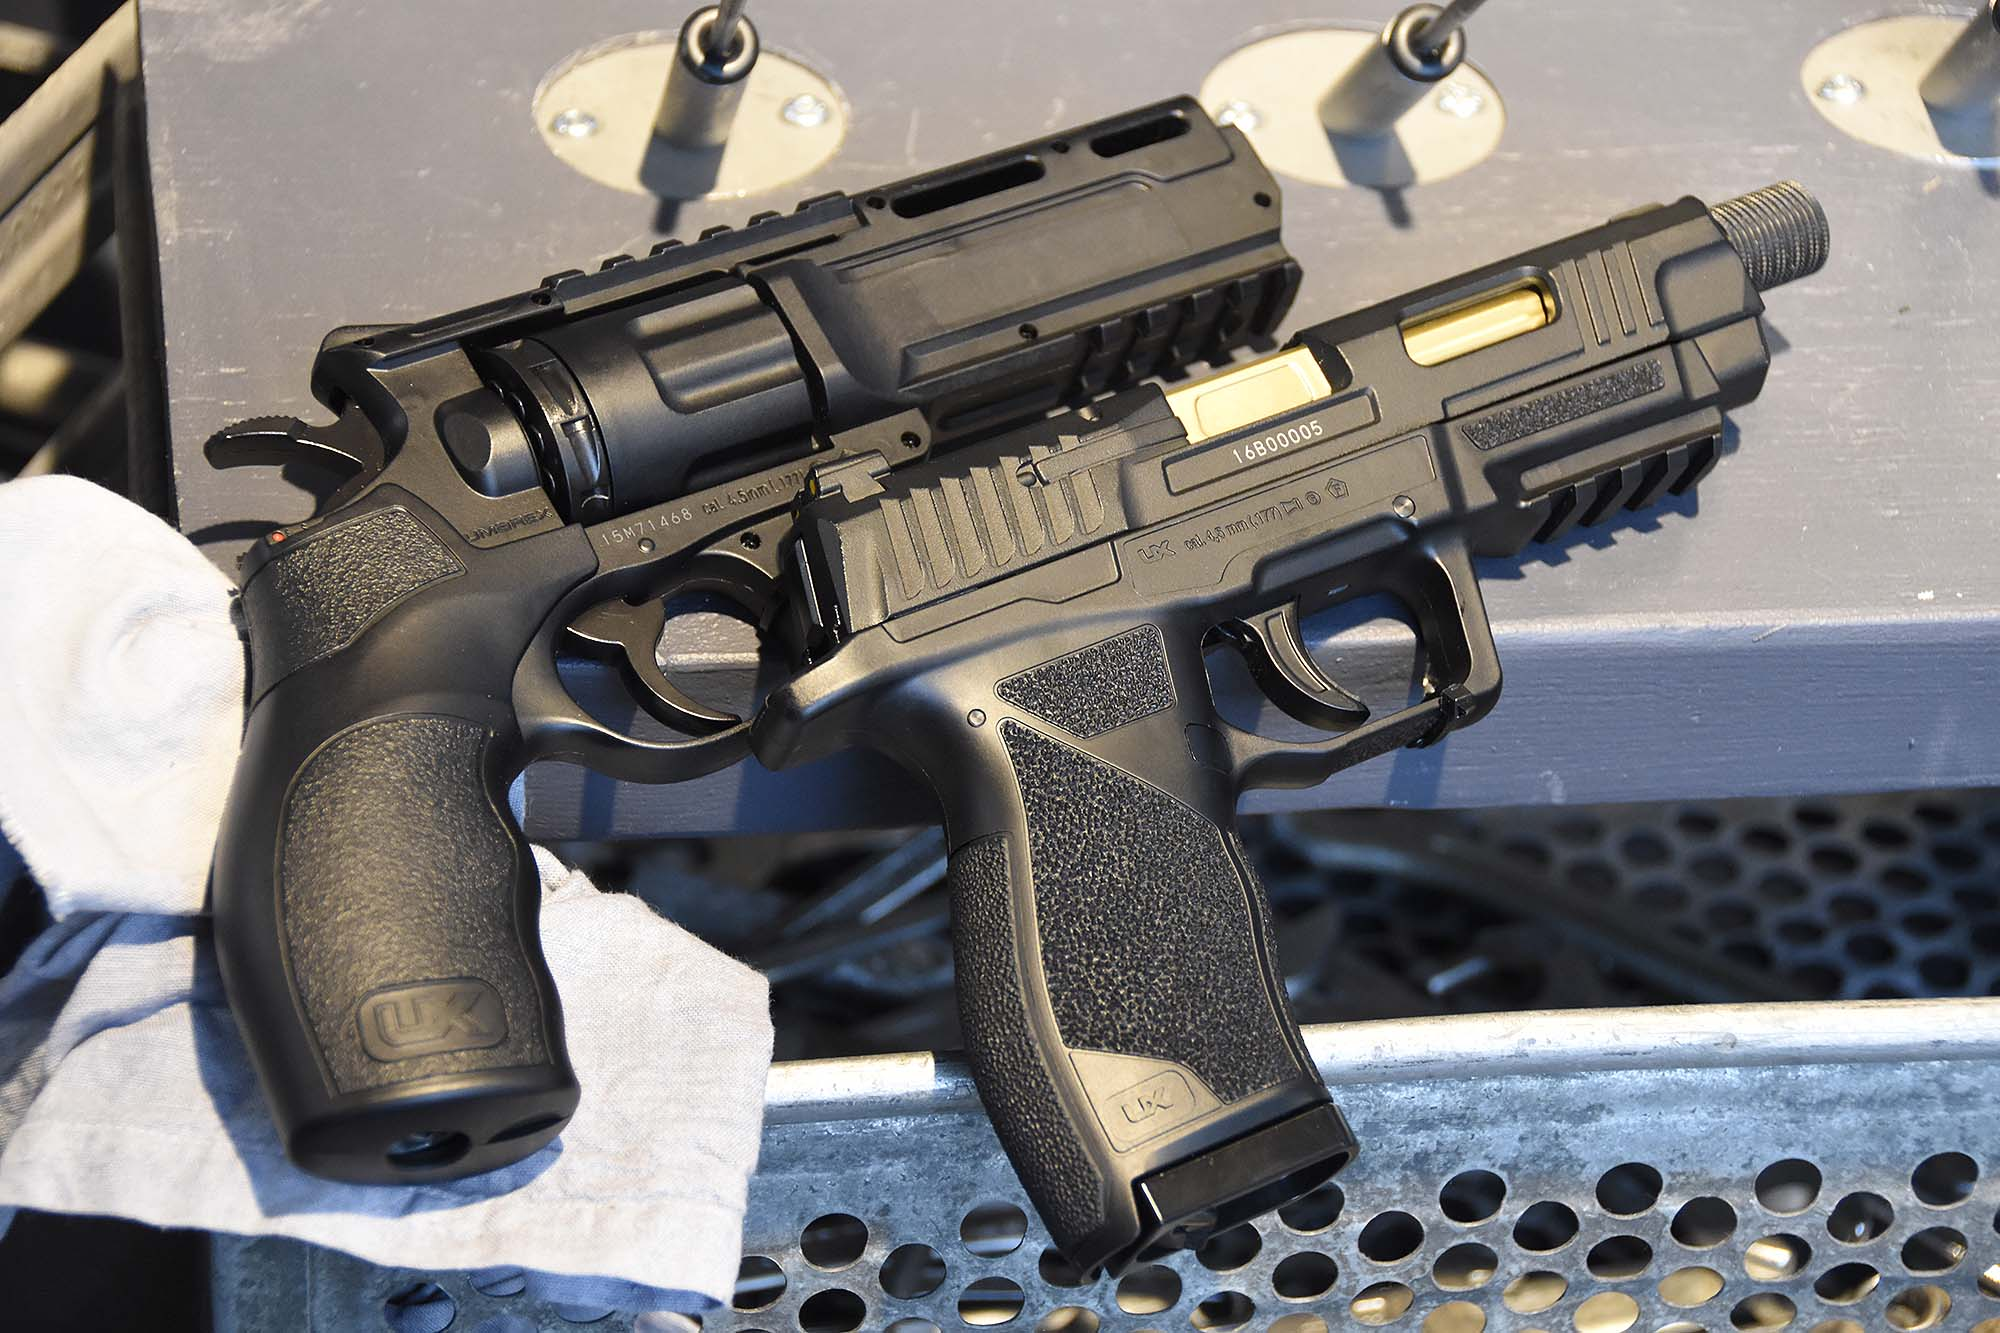 Umarex Walther Video: Walther-umarex 2016 New Air Pistols | Gunsweek.com